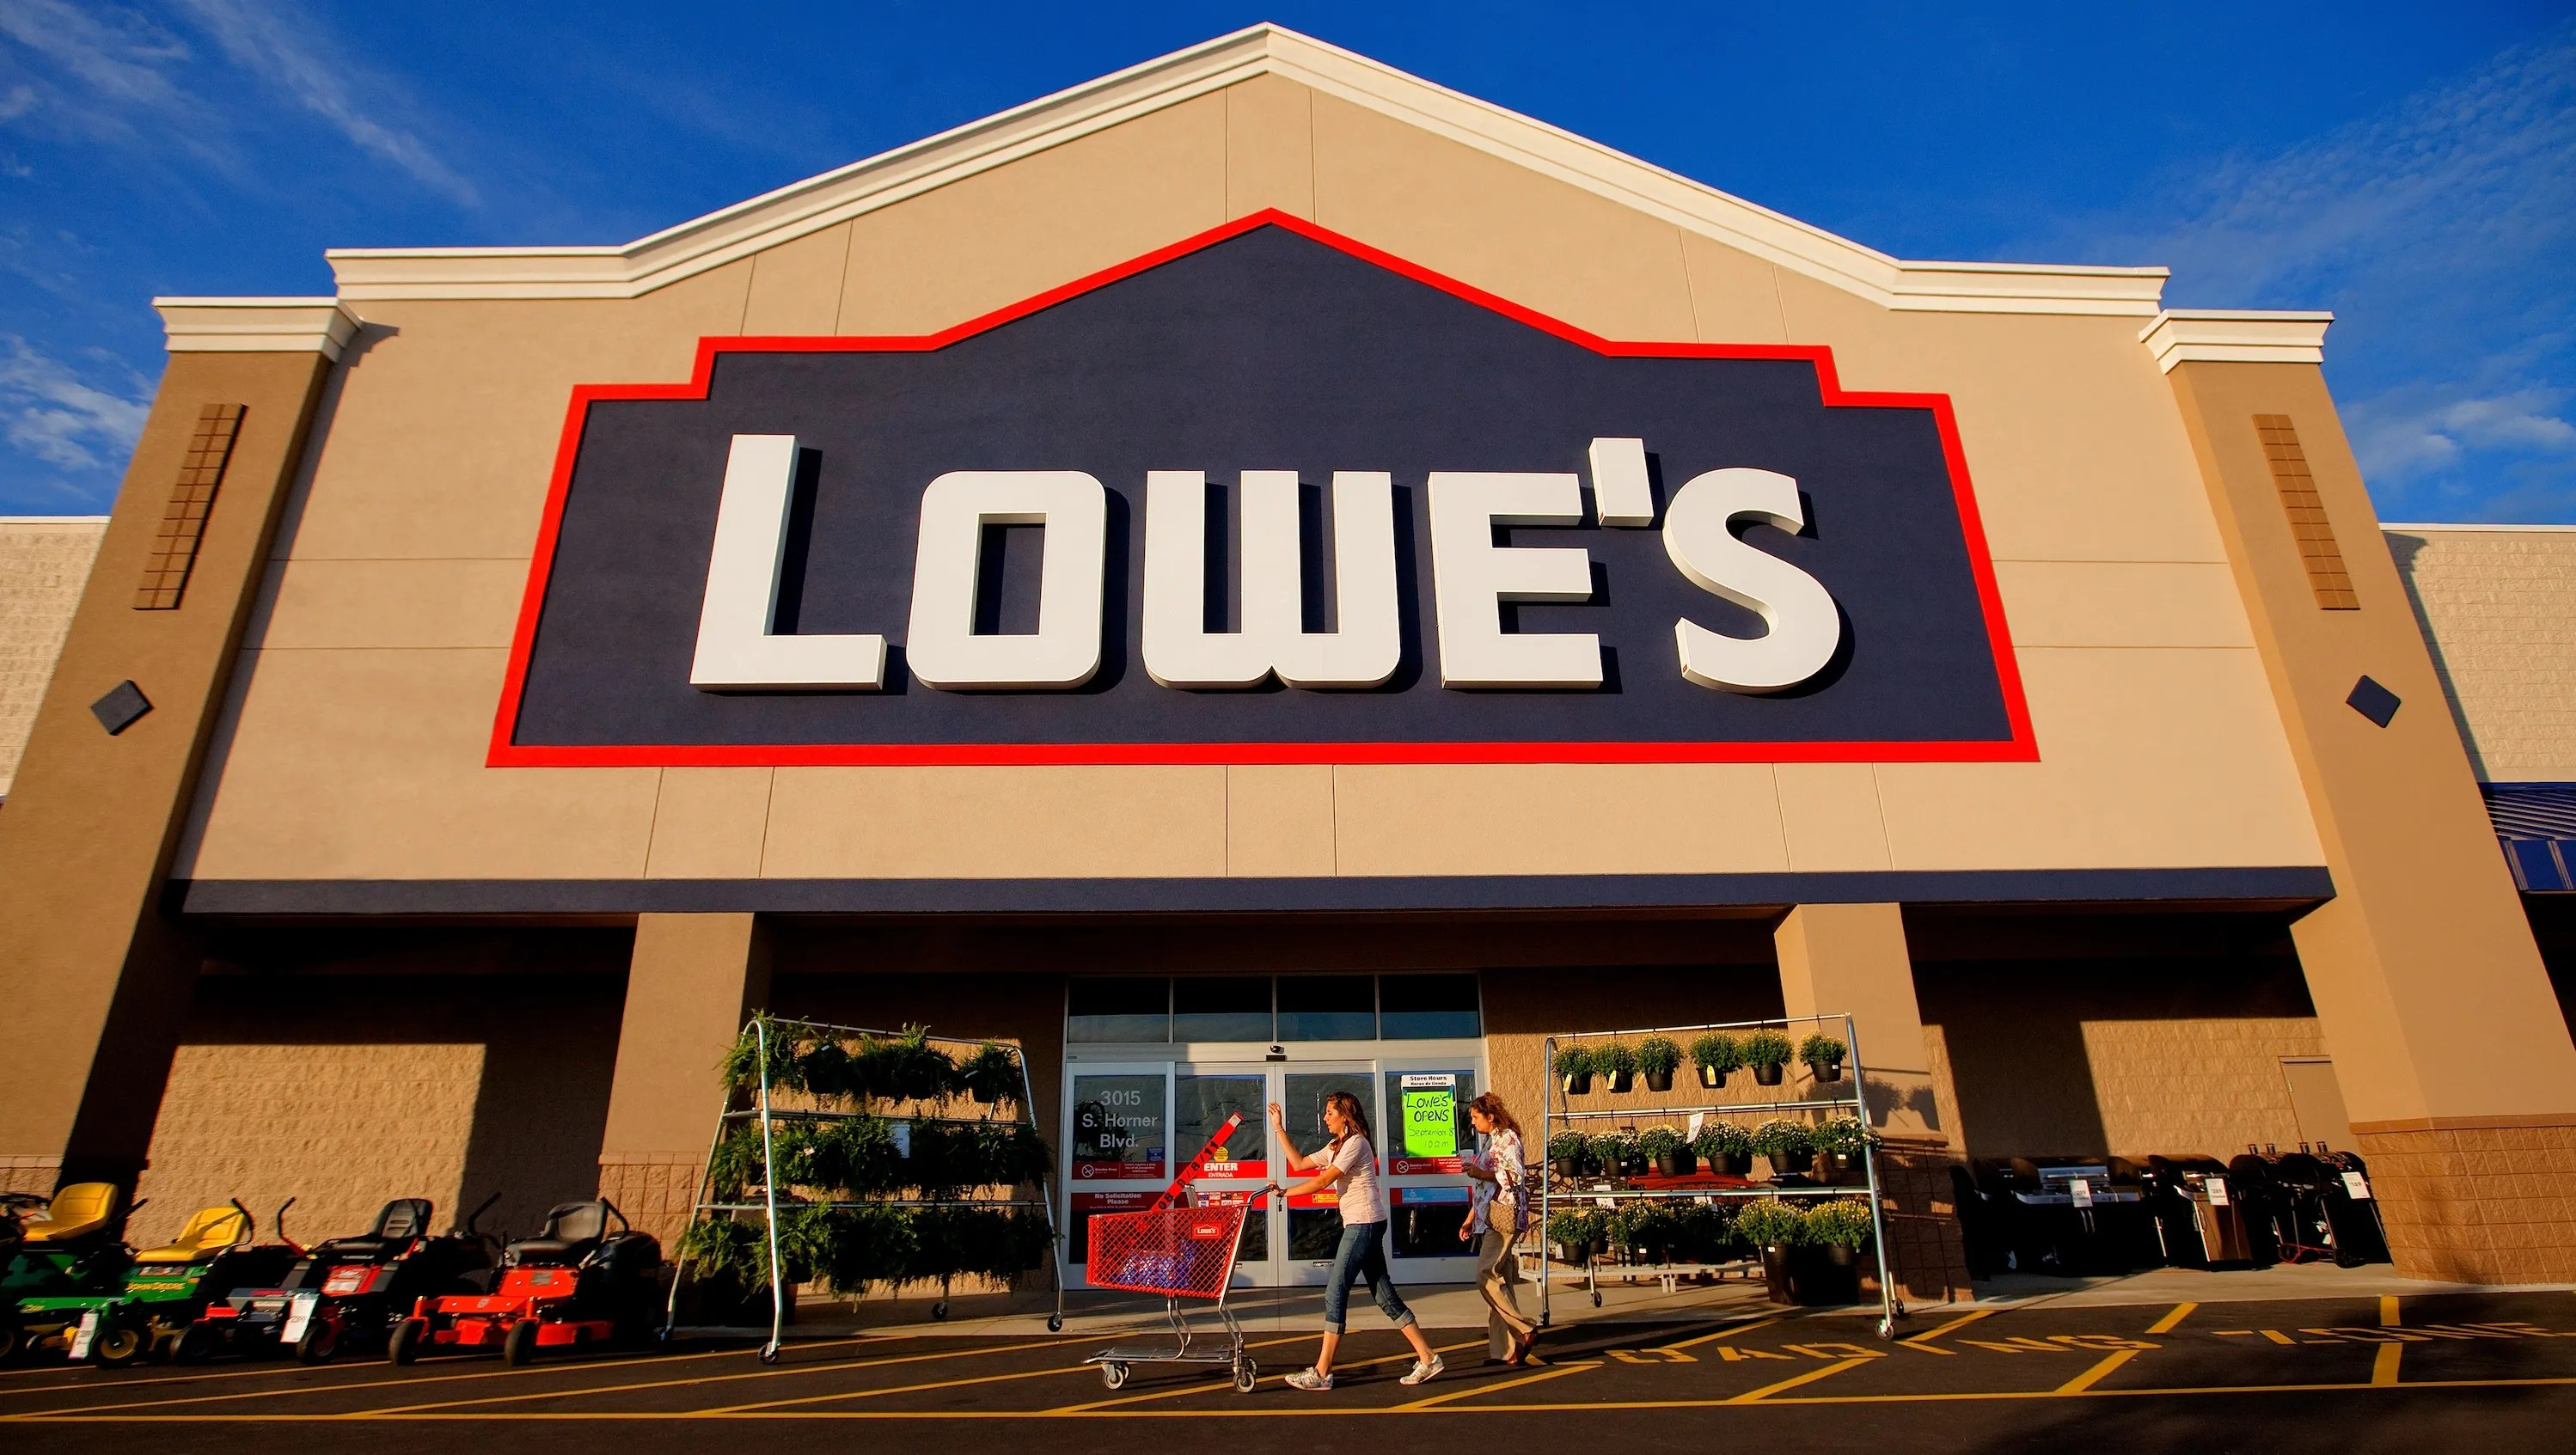 Encouragement To Hire Workers At Nc Facility Lowes Fiesta Las Cruces Lowes Hardware Las Cruces houzz-02 Lowes Las Cruces